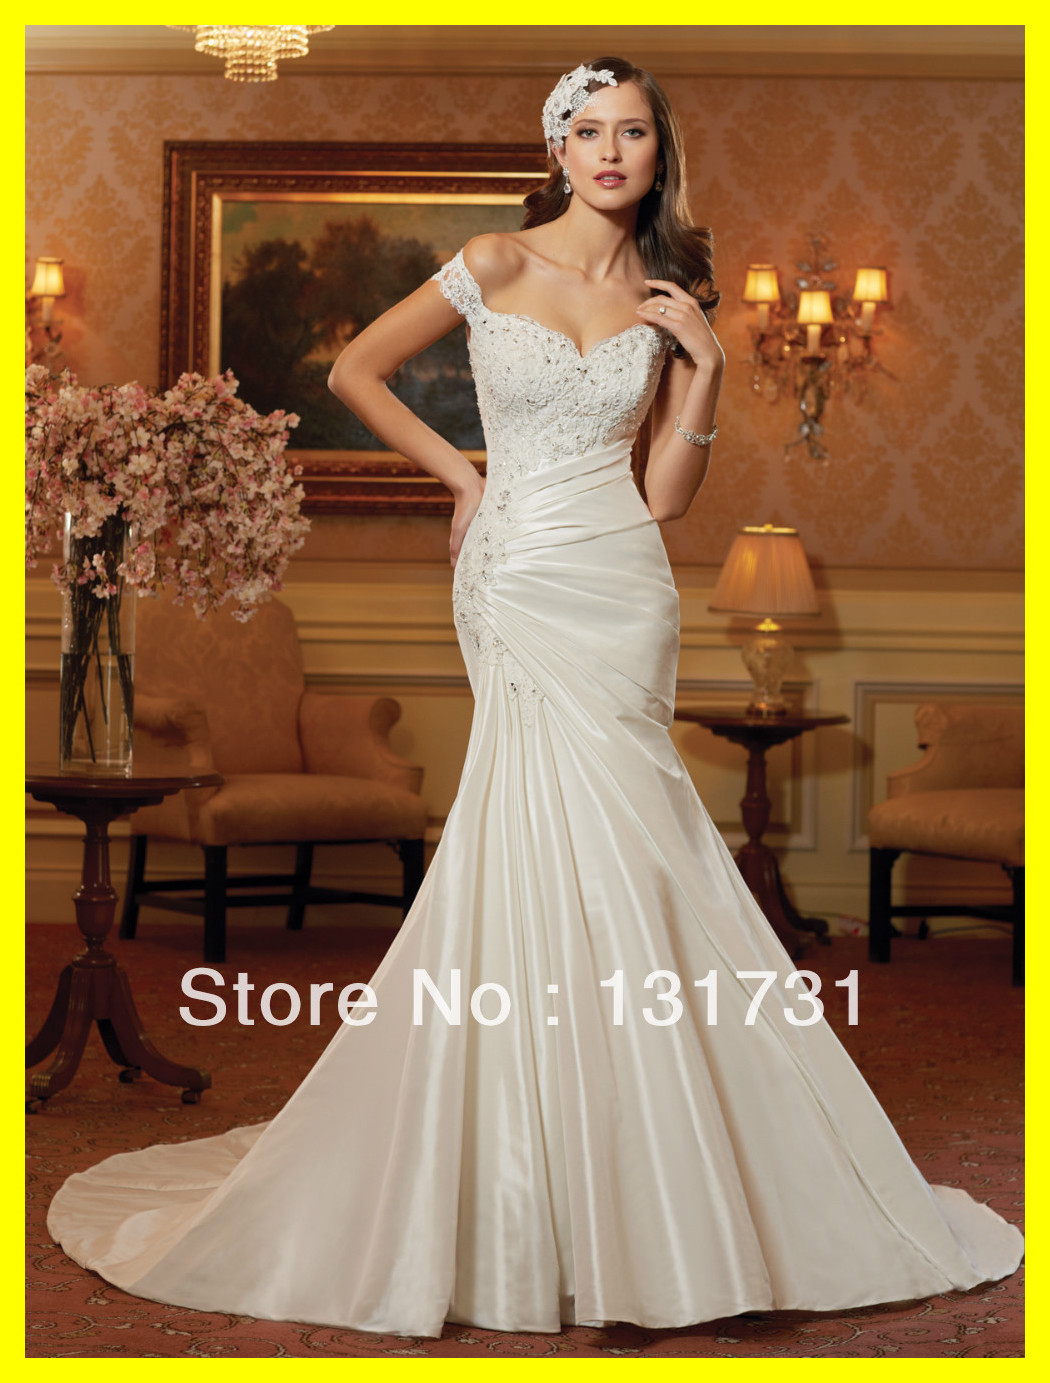 Gold Prom Dresses Under Places To Buy Short Junior Dress Trumpet /Mermaid Floor-Length Chapel Train Built-In Bra Ap 2015 Outlet(China (Mainland))